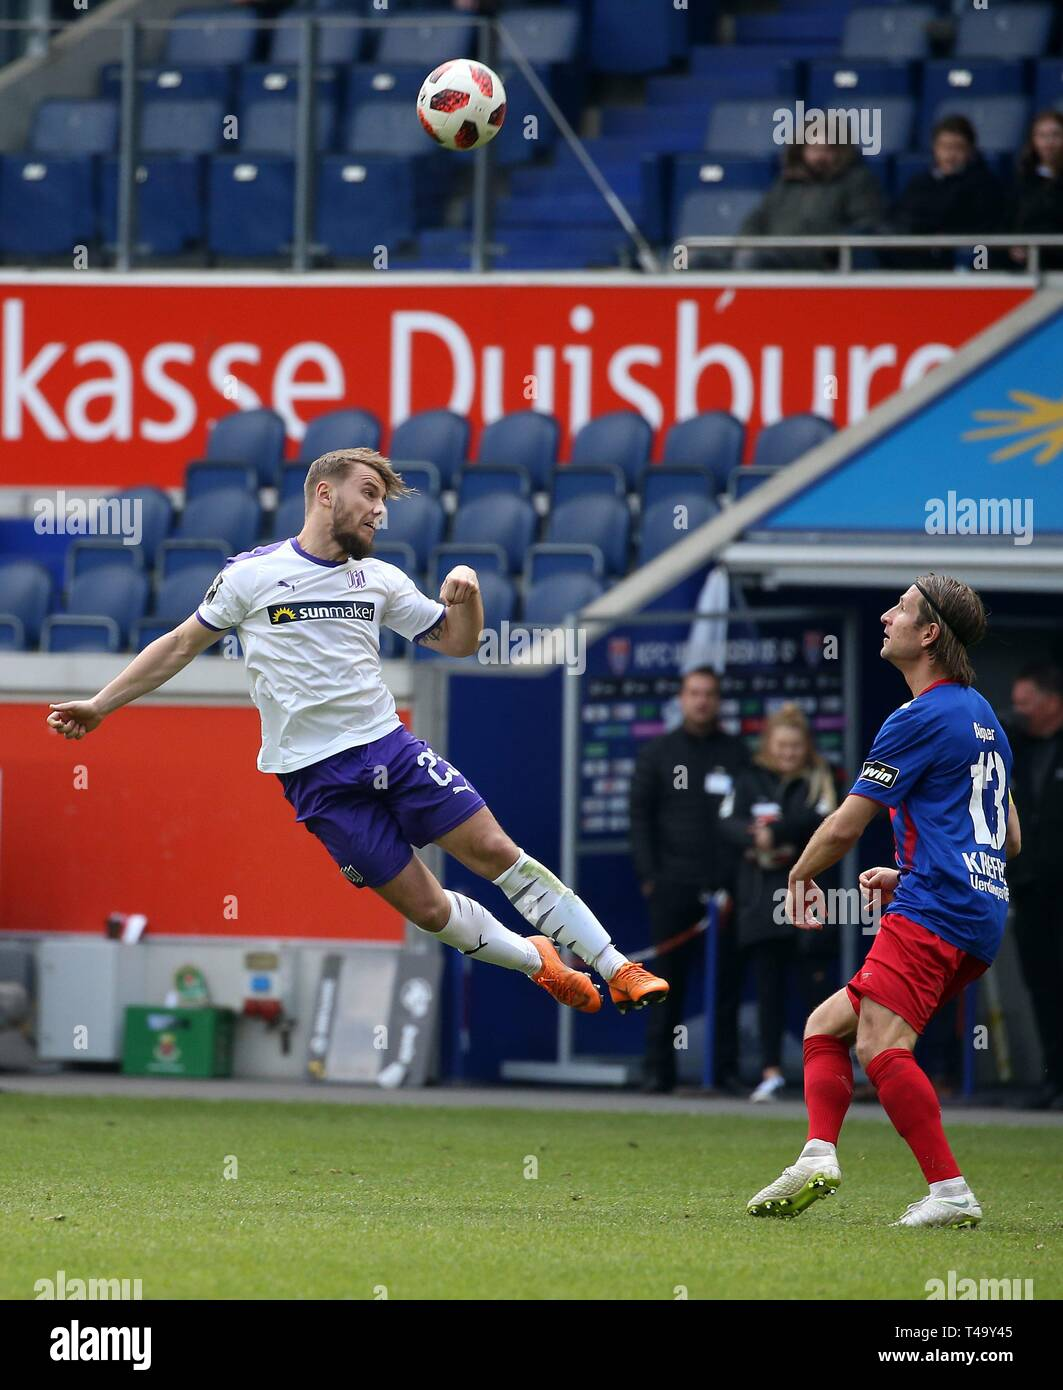 firo: 14.04.2019 Football, 3. Bundesliga, season 2018/2019 KFC Uerdingen 05 - VfL Osnabróck David Blacha (# 23, VfL OsnabrÃ_ck) in the header duel with Stefan Aigner (# 13, KFC Uerdingen 05) | usage worldwide - Stock Image